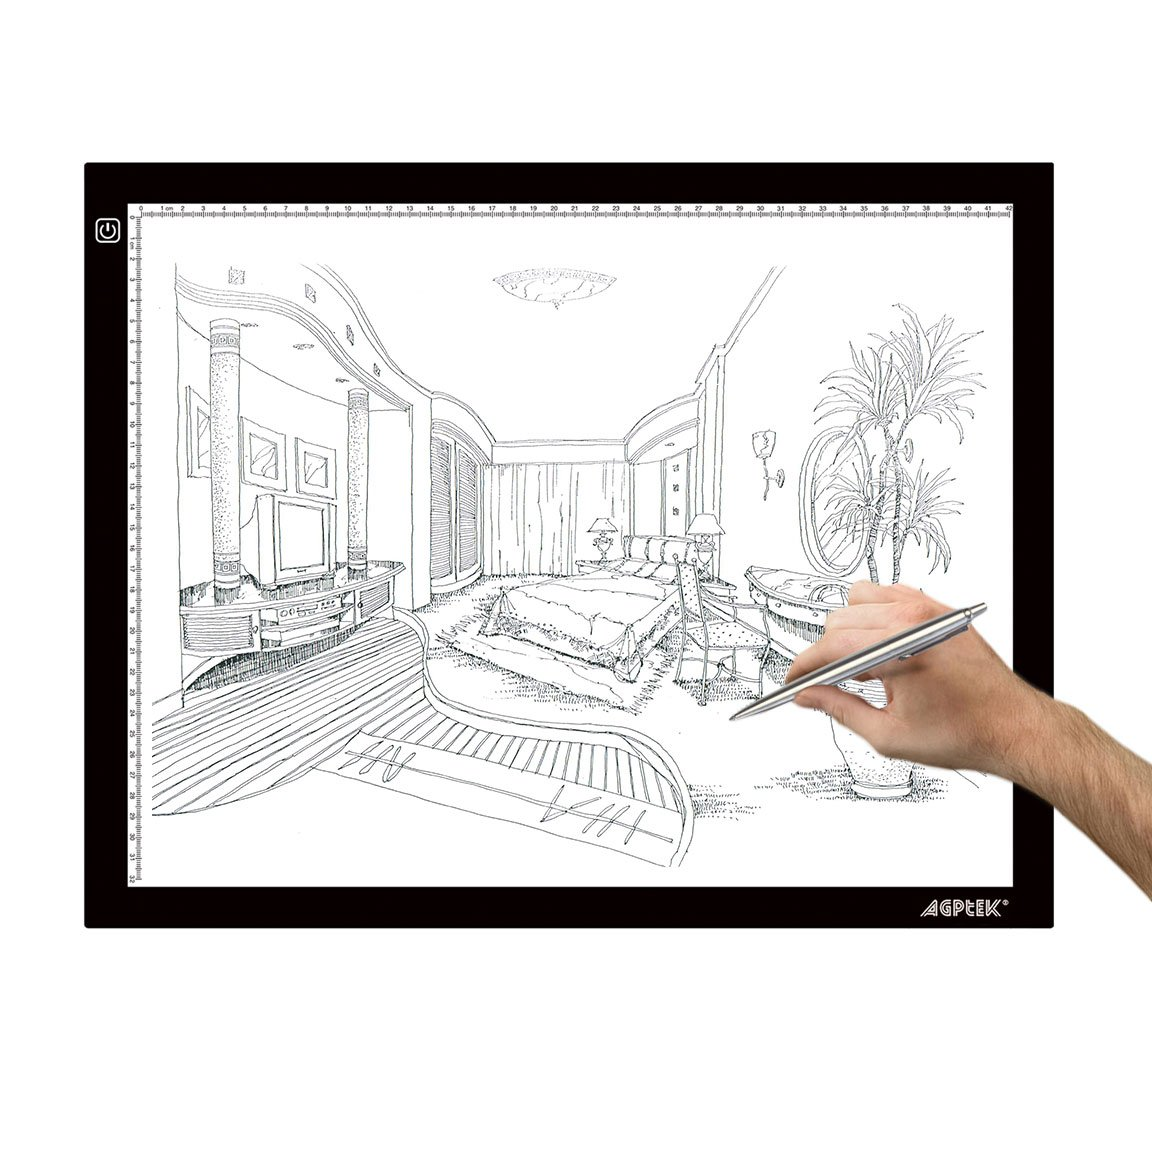 AGPtek A3 Ultra-thin USB Power LED Artcraft Tracing Light Pad Light Box with Brightness Control USB Wall Adapter For Artists, Drawing, Sketching, Animation, Diamond Painting, X-Ray View, Tattoo, Quilting by AGPTEK